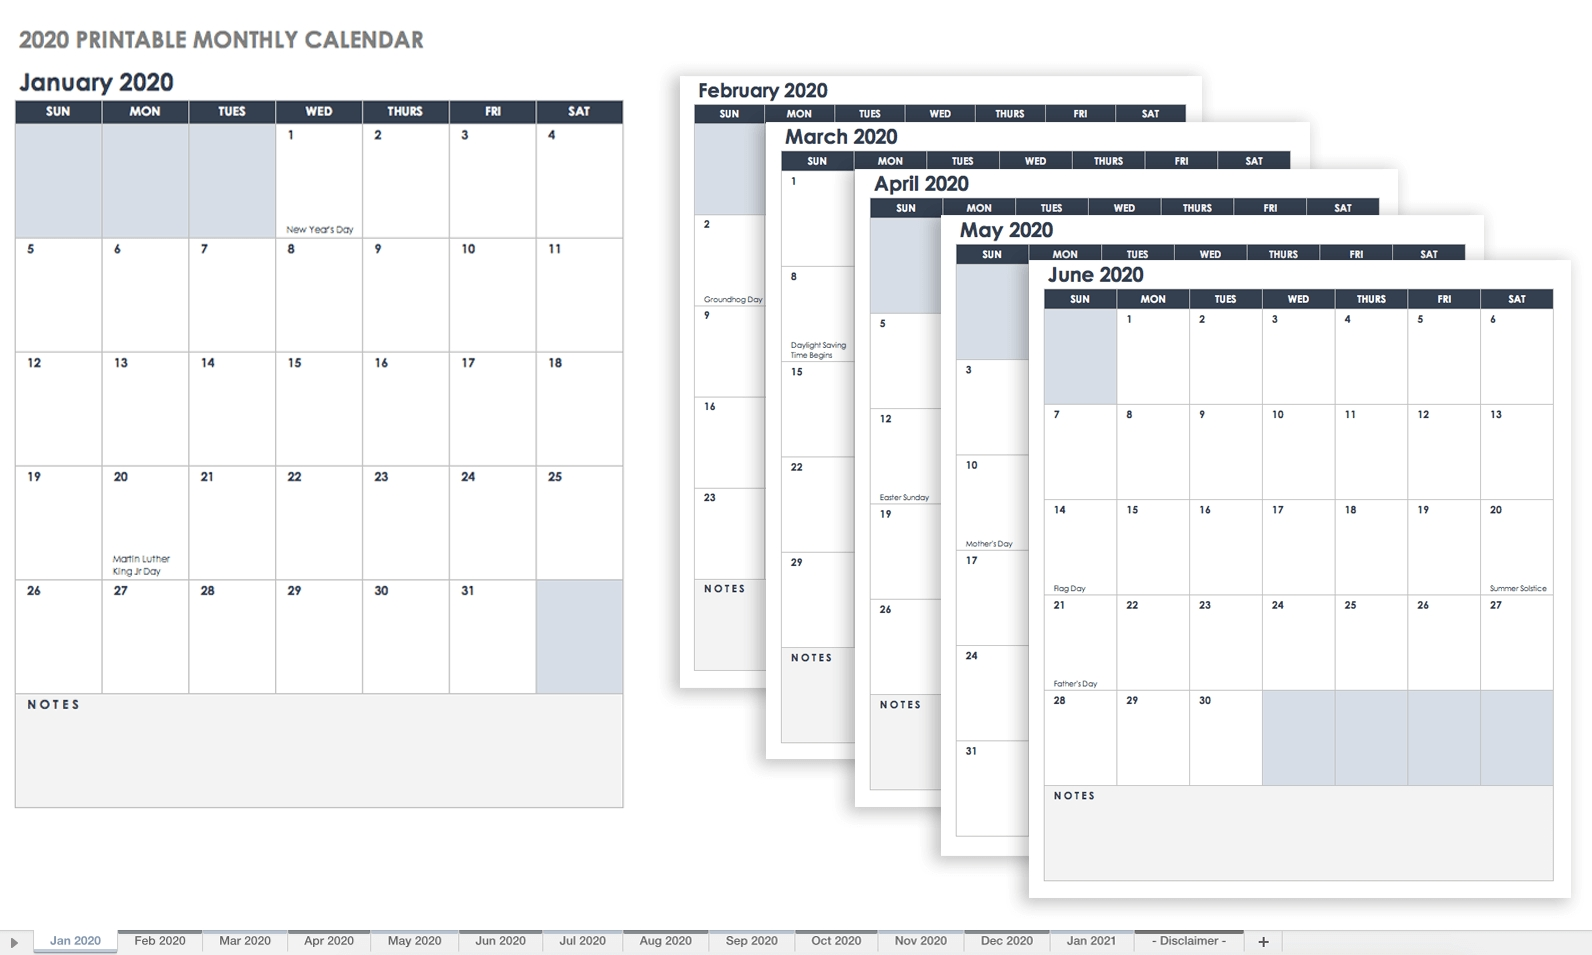 Free, Printable Excel Calendar Templates For 2019 & On | Smartsheet intended for Samples Of Monthly Activity Calendar Templates And Designs